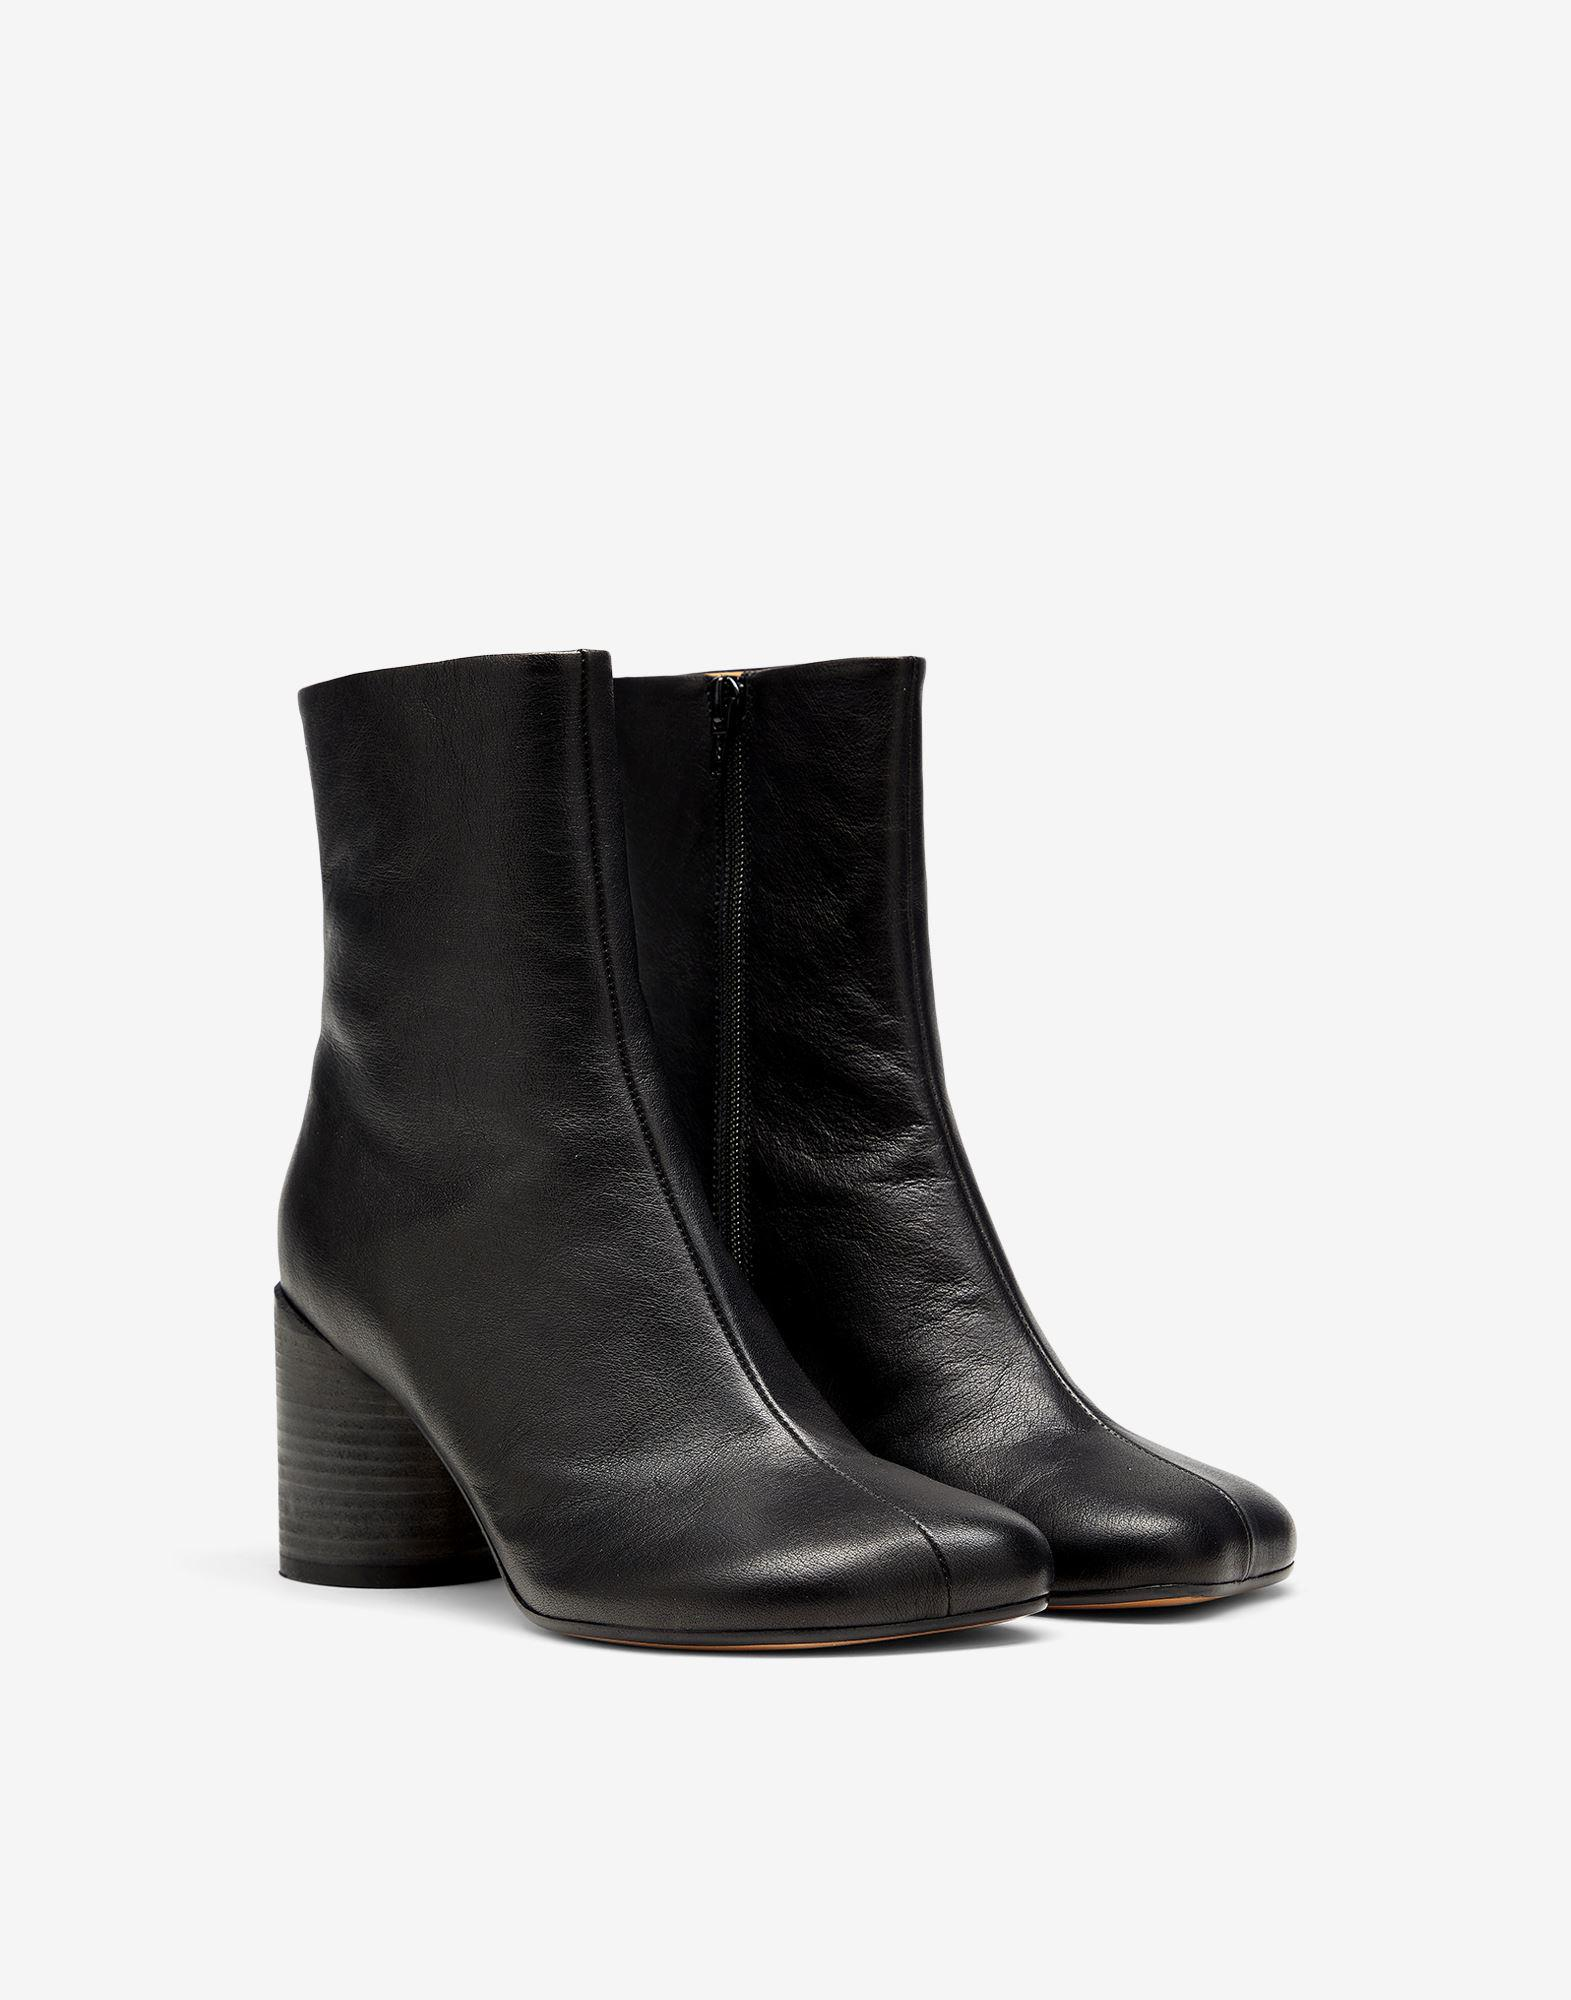 Anatomic ankle boots 1